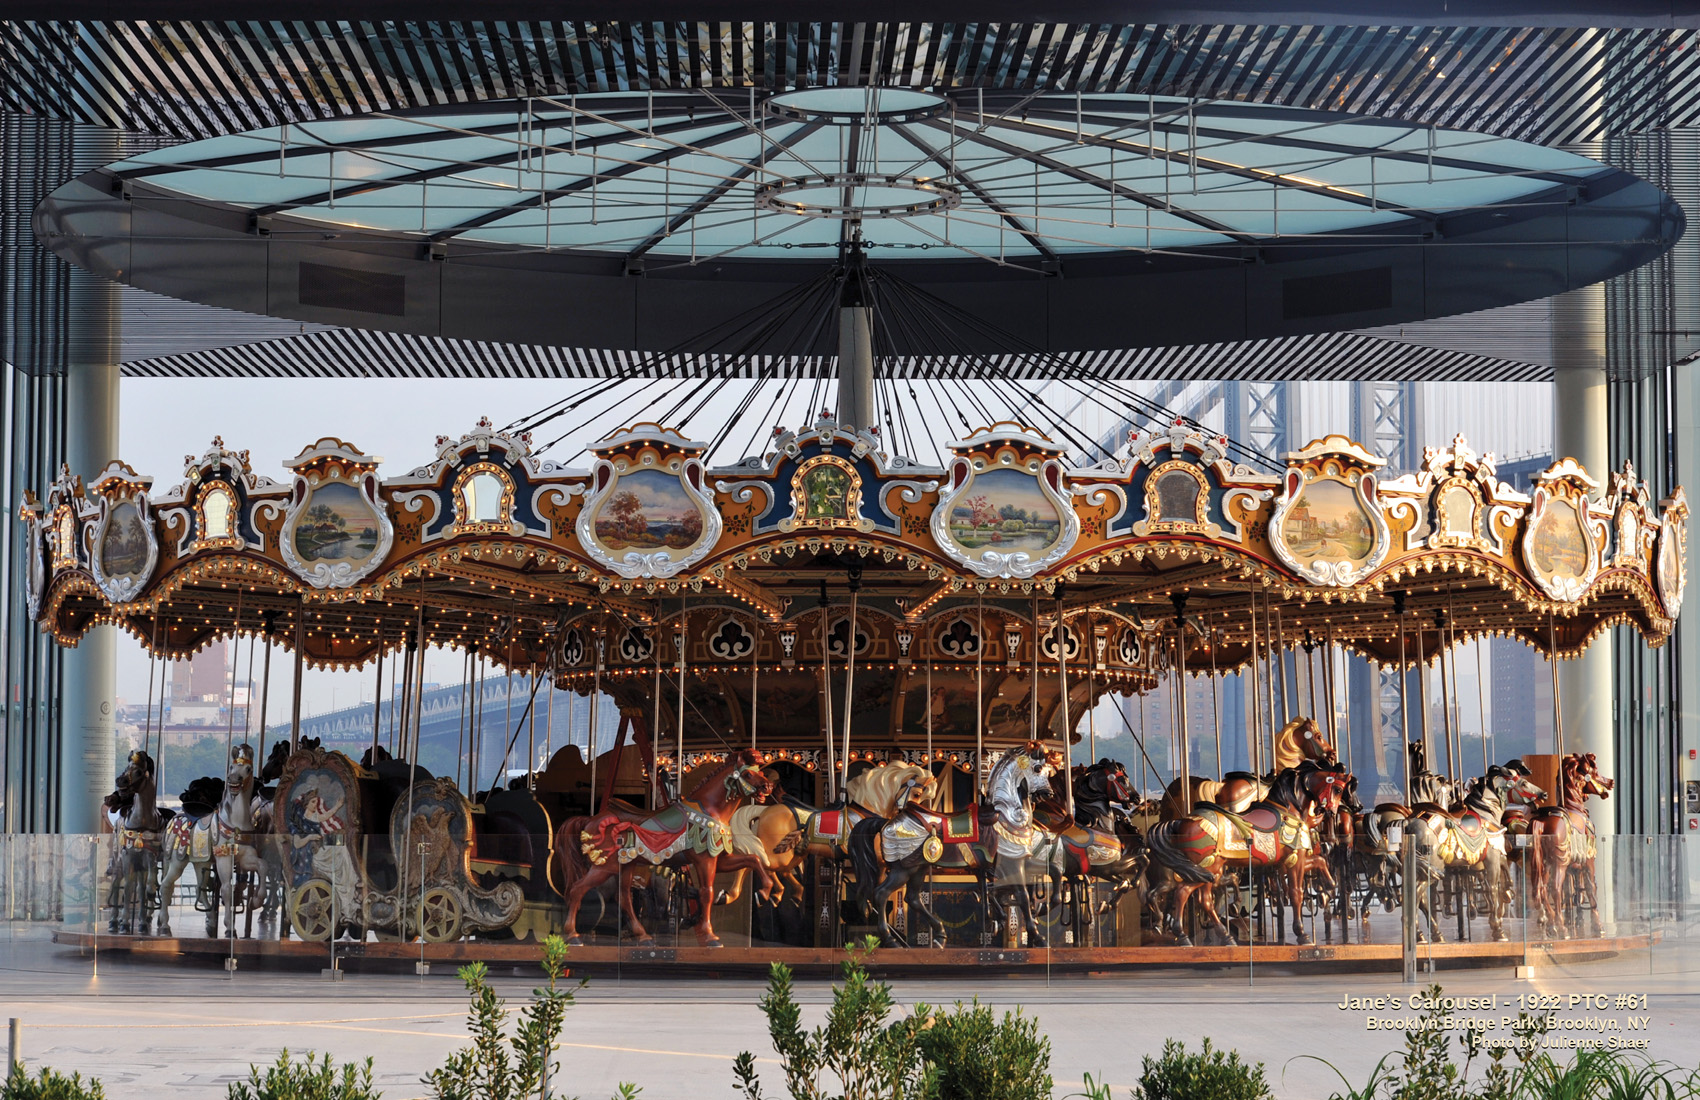 Janes-Carousel-PTC-61-Brooklyn-CNT-center-May_11